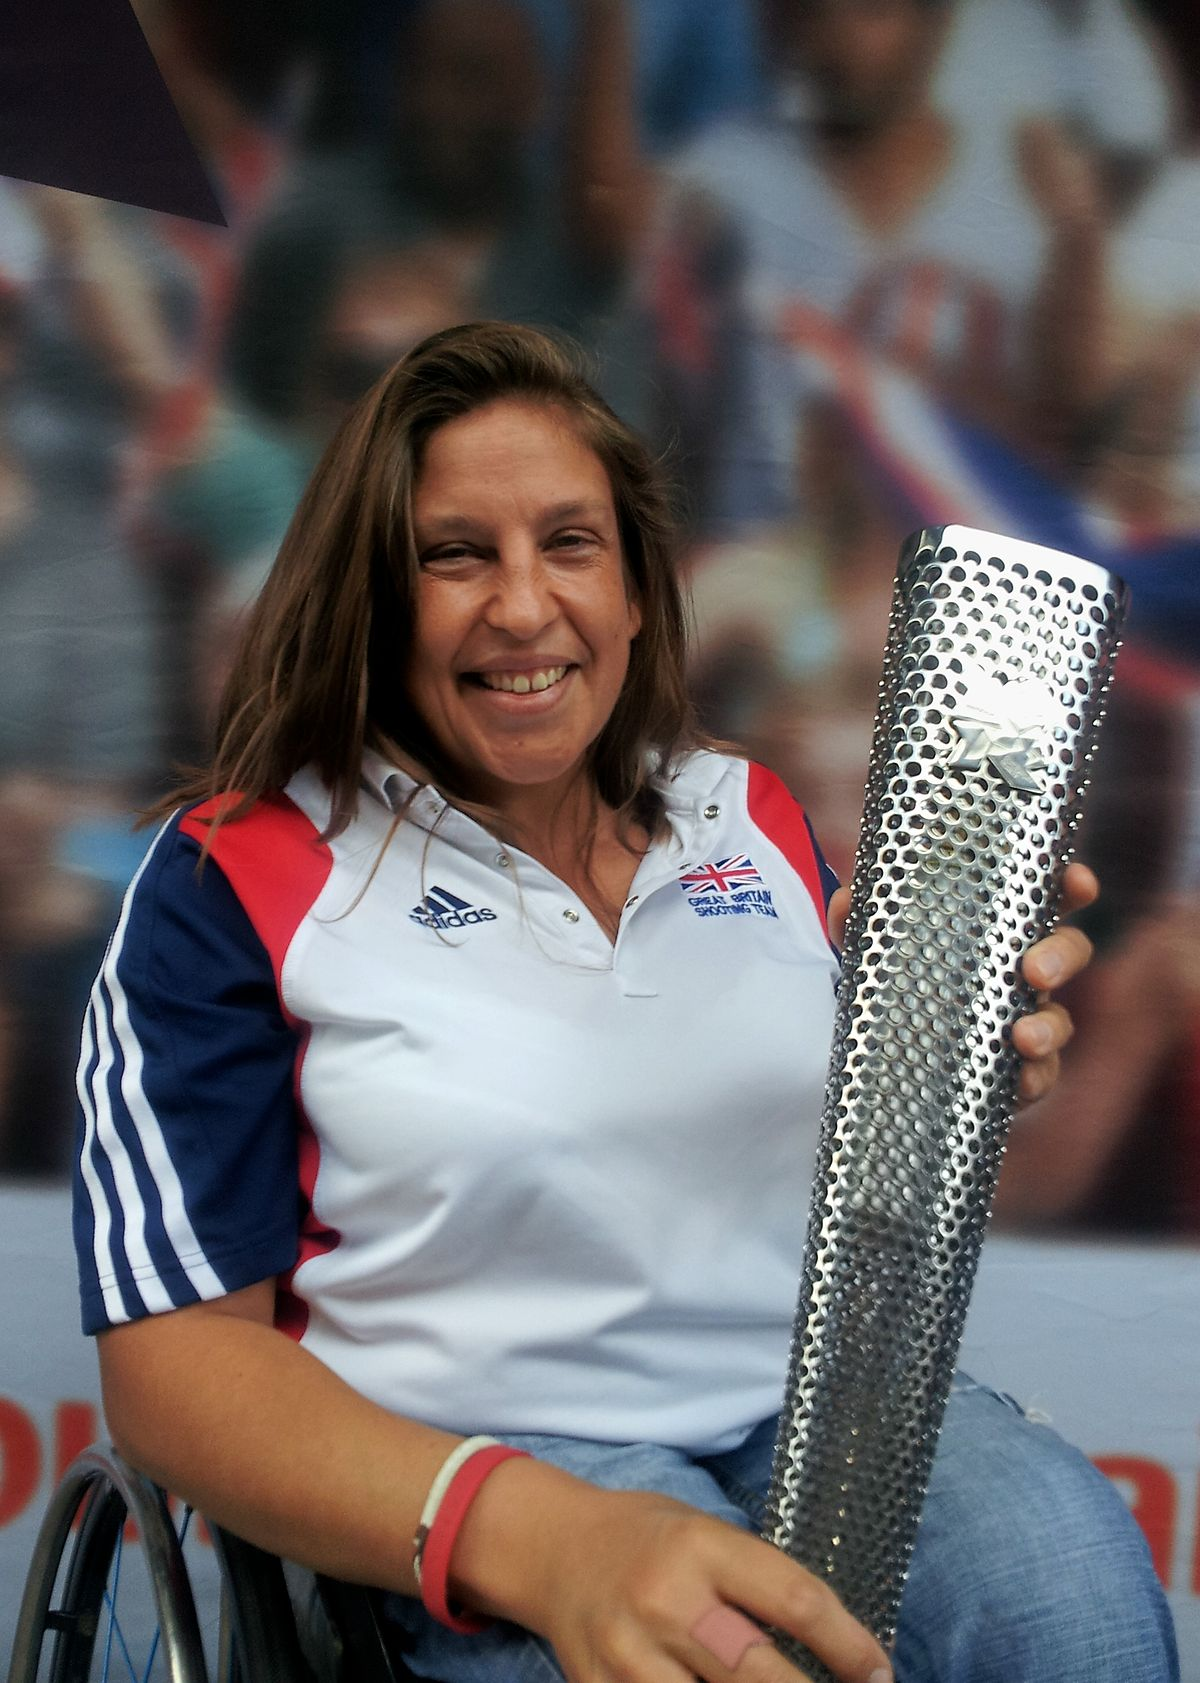 2012 summer paralympics torch relay